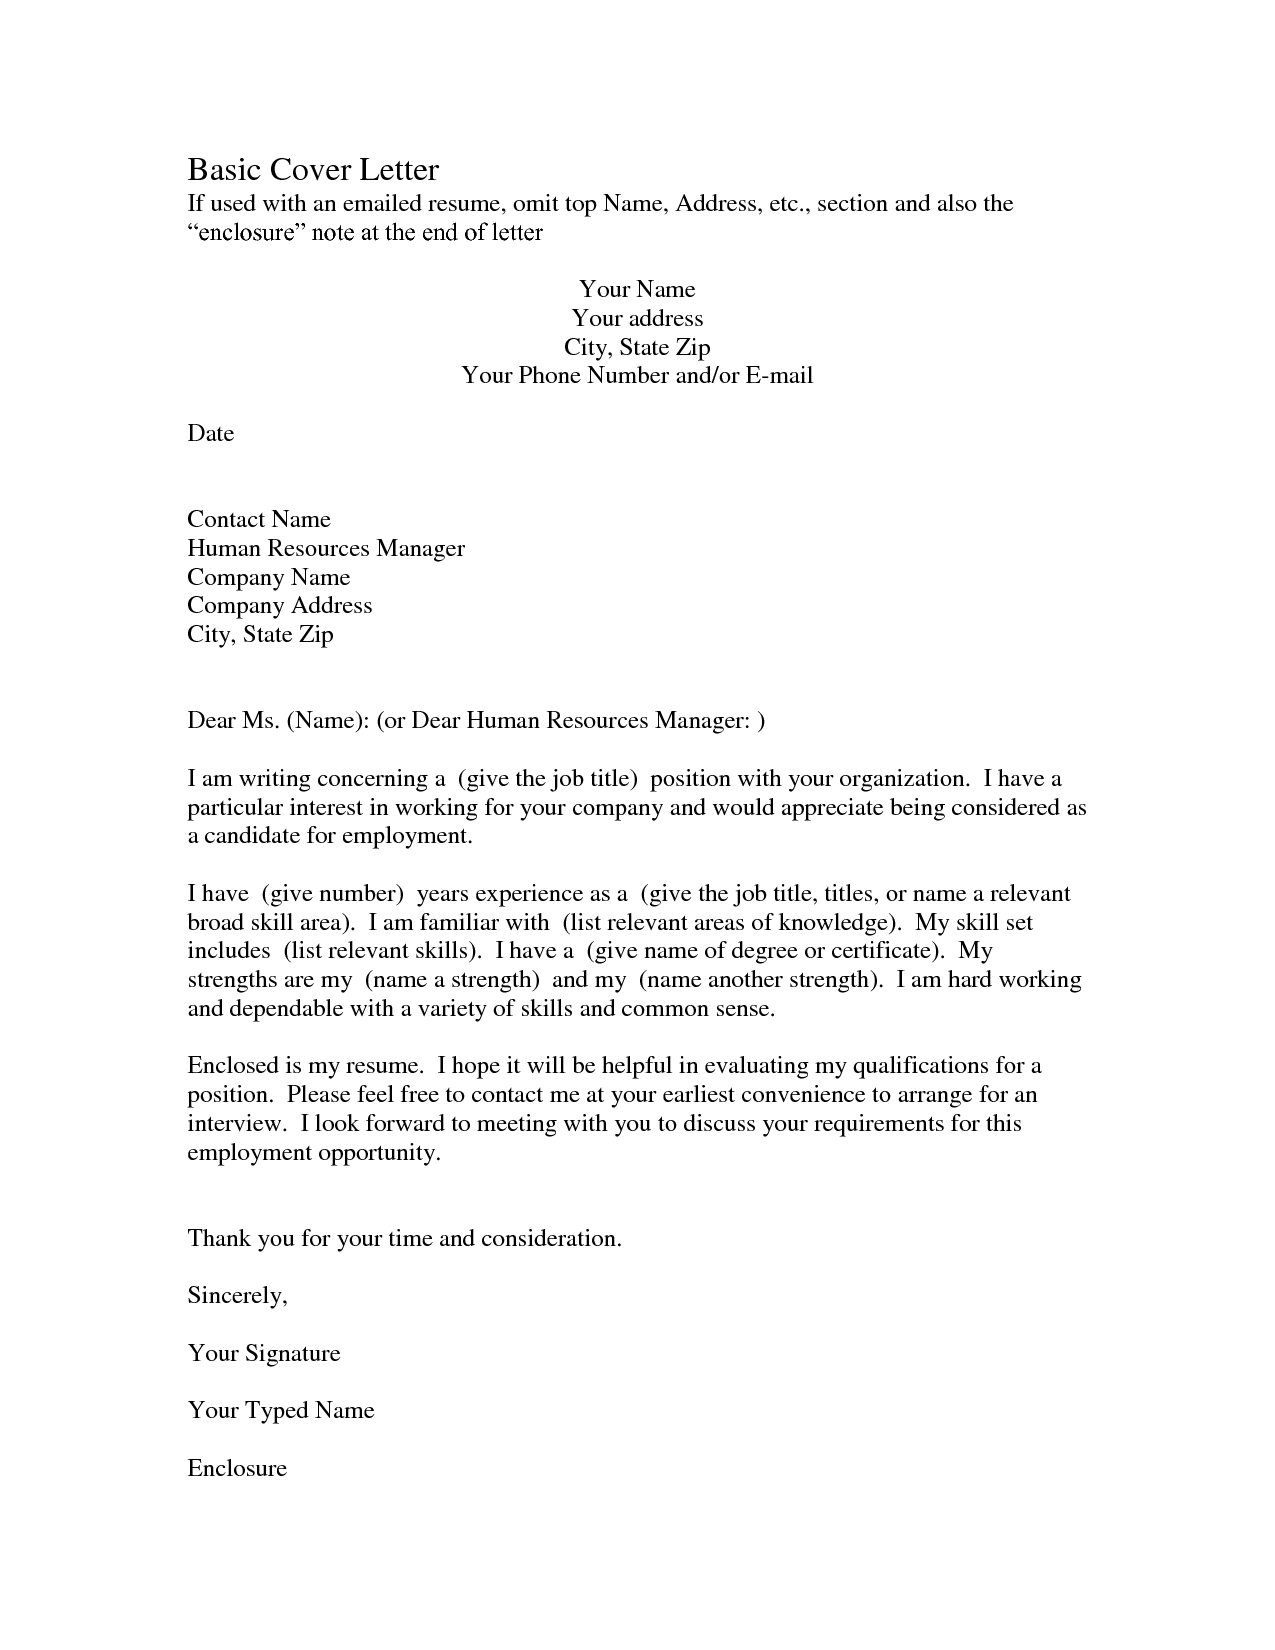 mechanic cover letter examples relocation cover letter sample college graduate sample resume examples of a good essay introduction dental hygiene cover - Free Sample Cover Letter For Resume